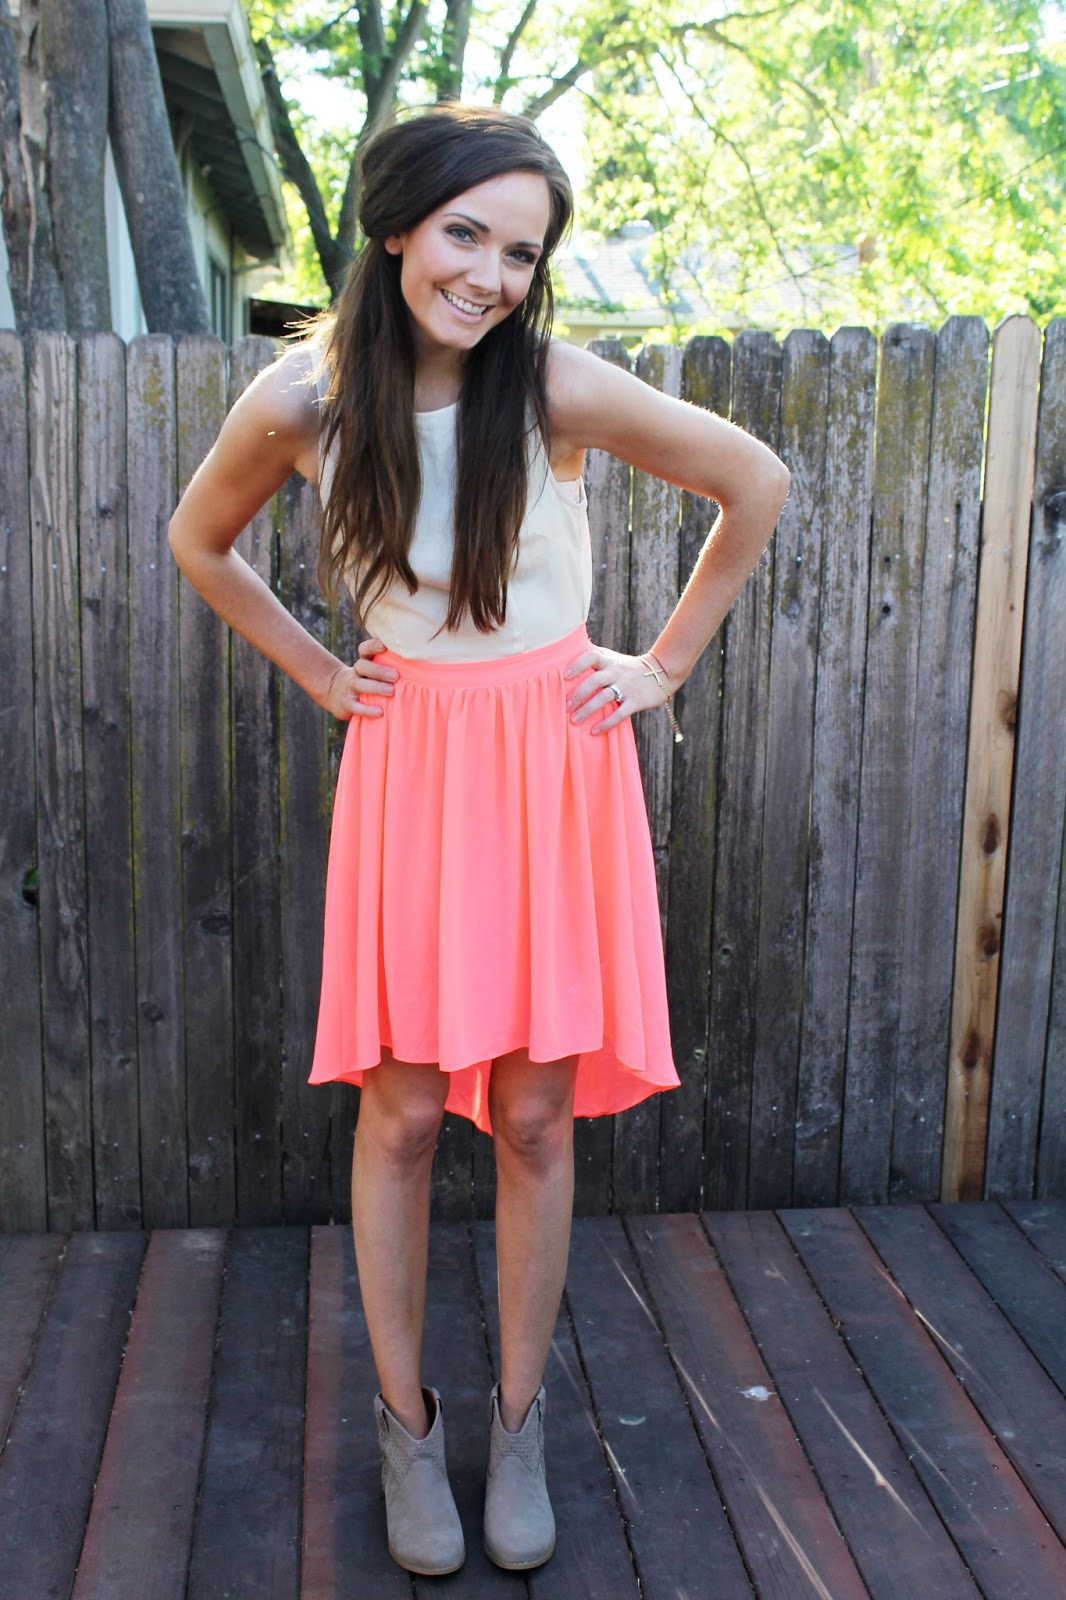 White And Pink Dress With Black Shoes